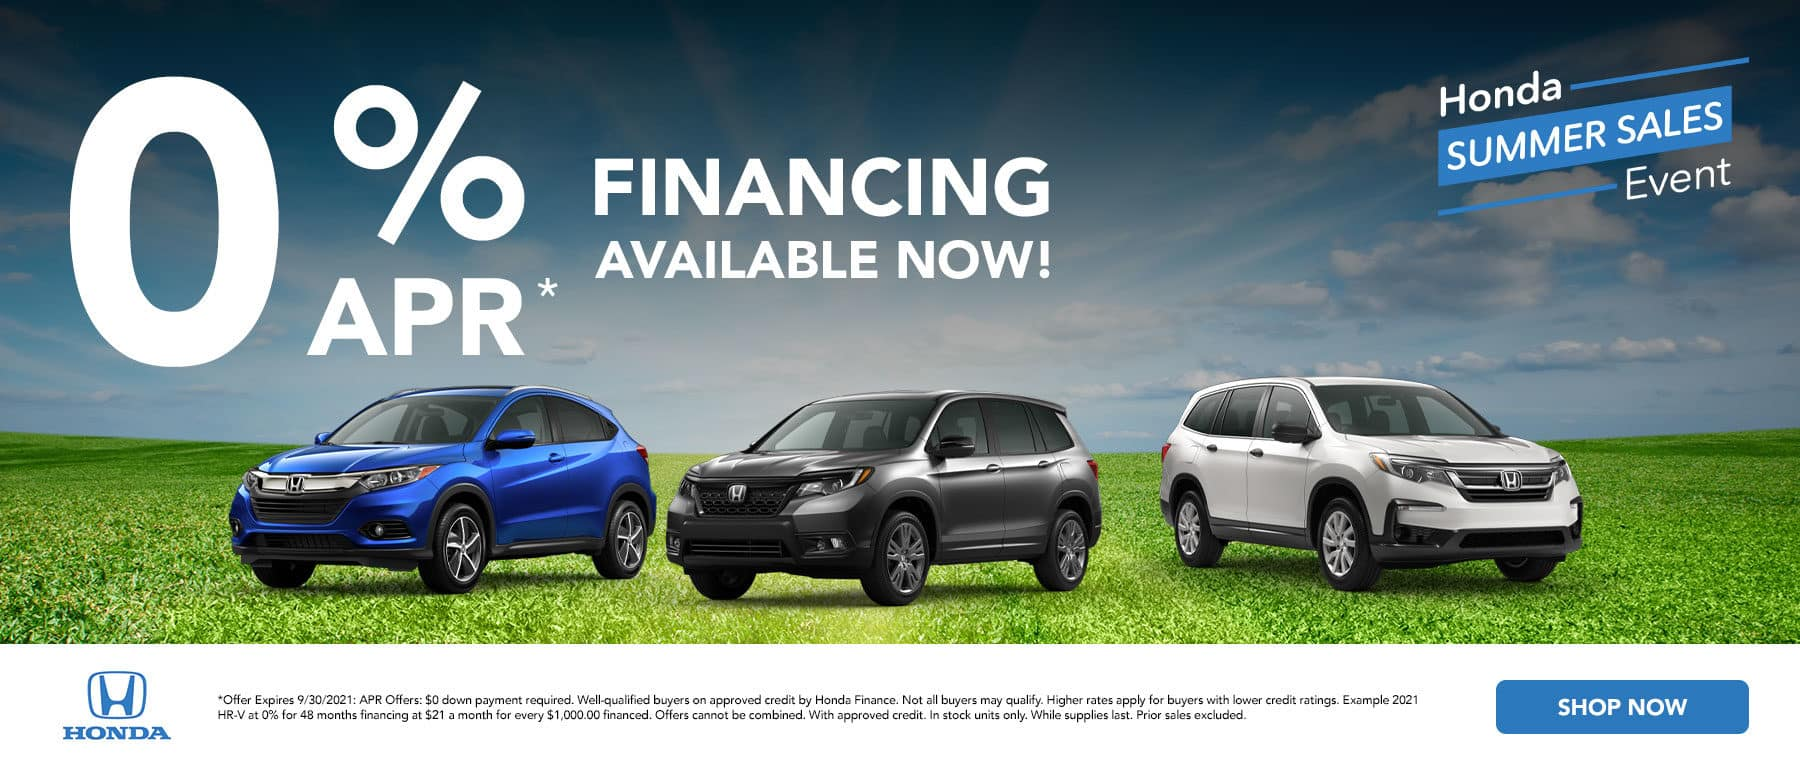 0% financing APR available now!